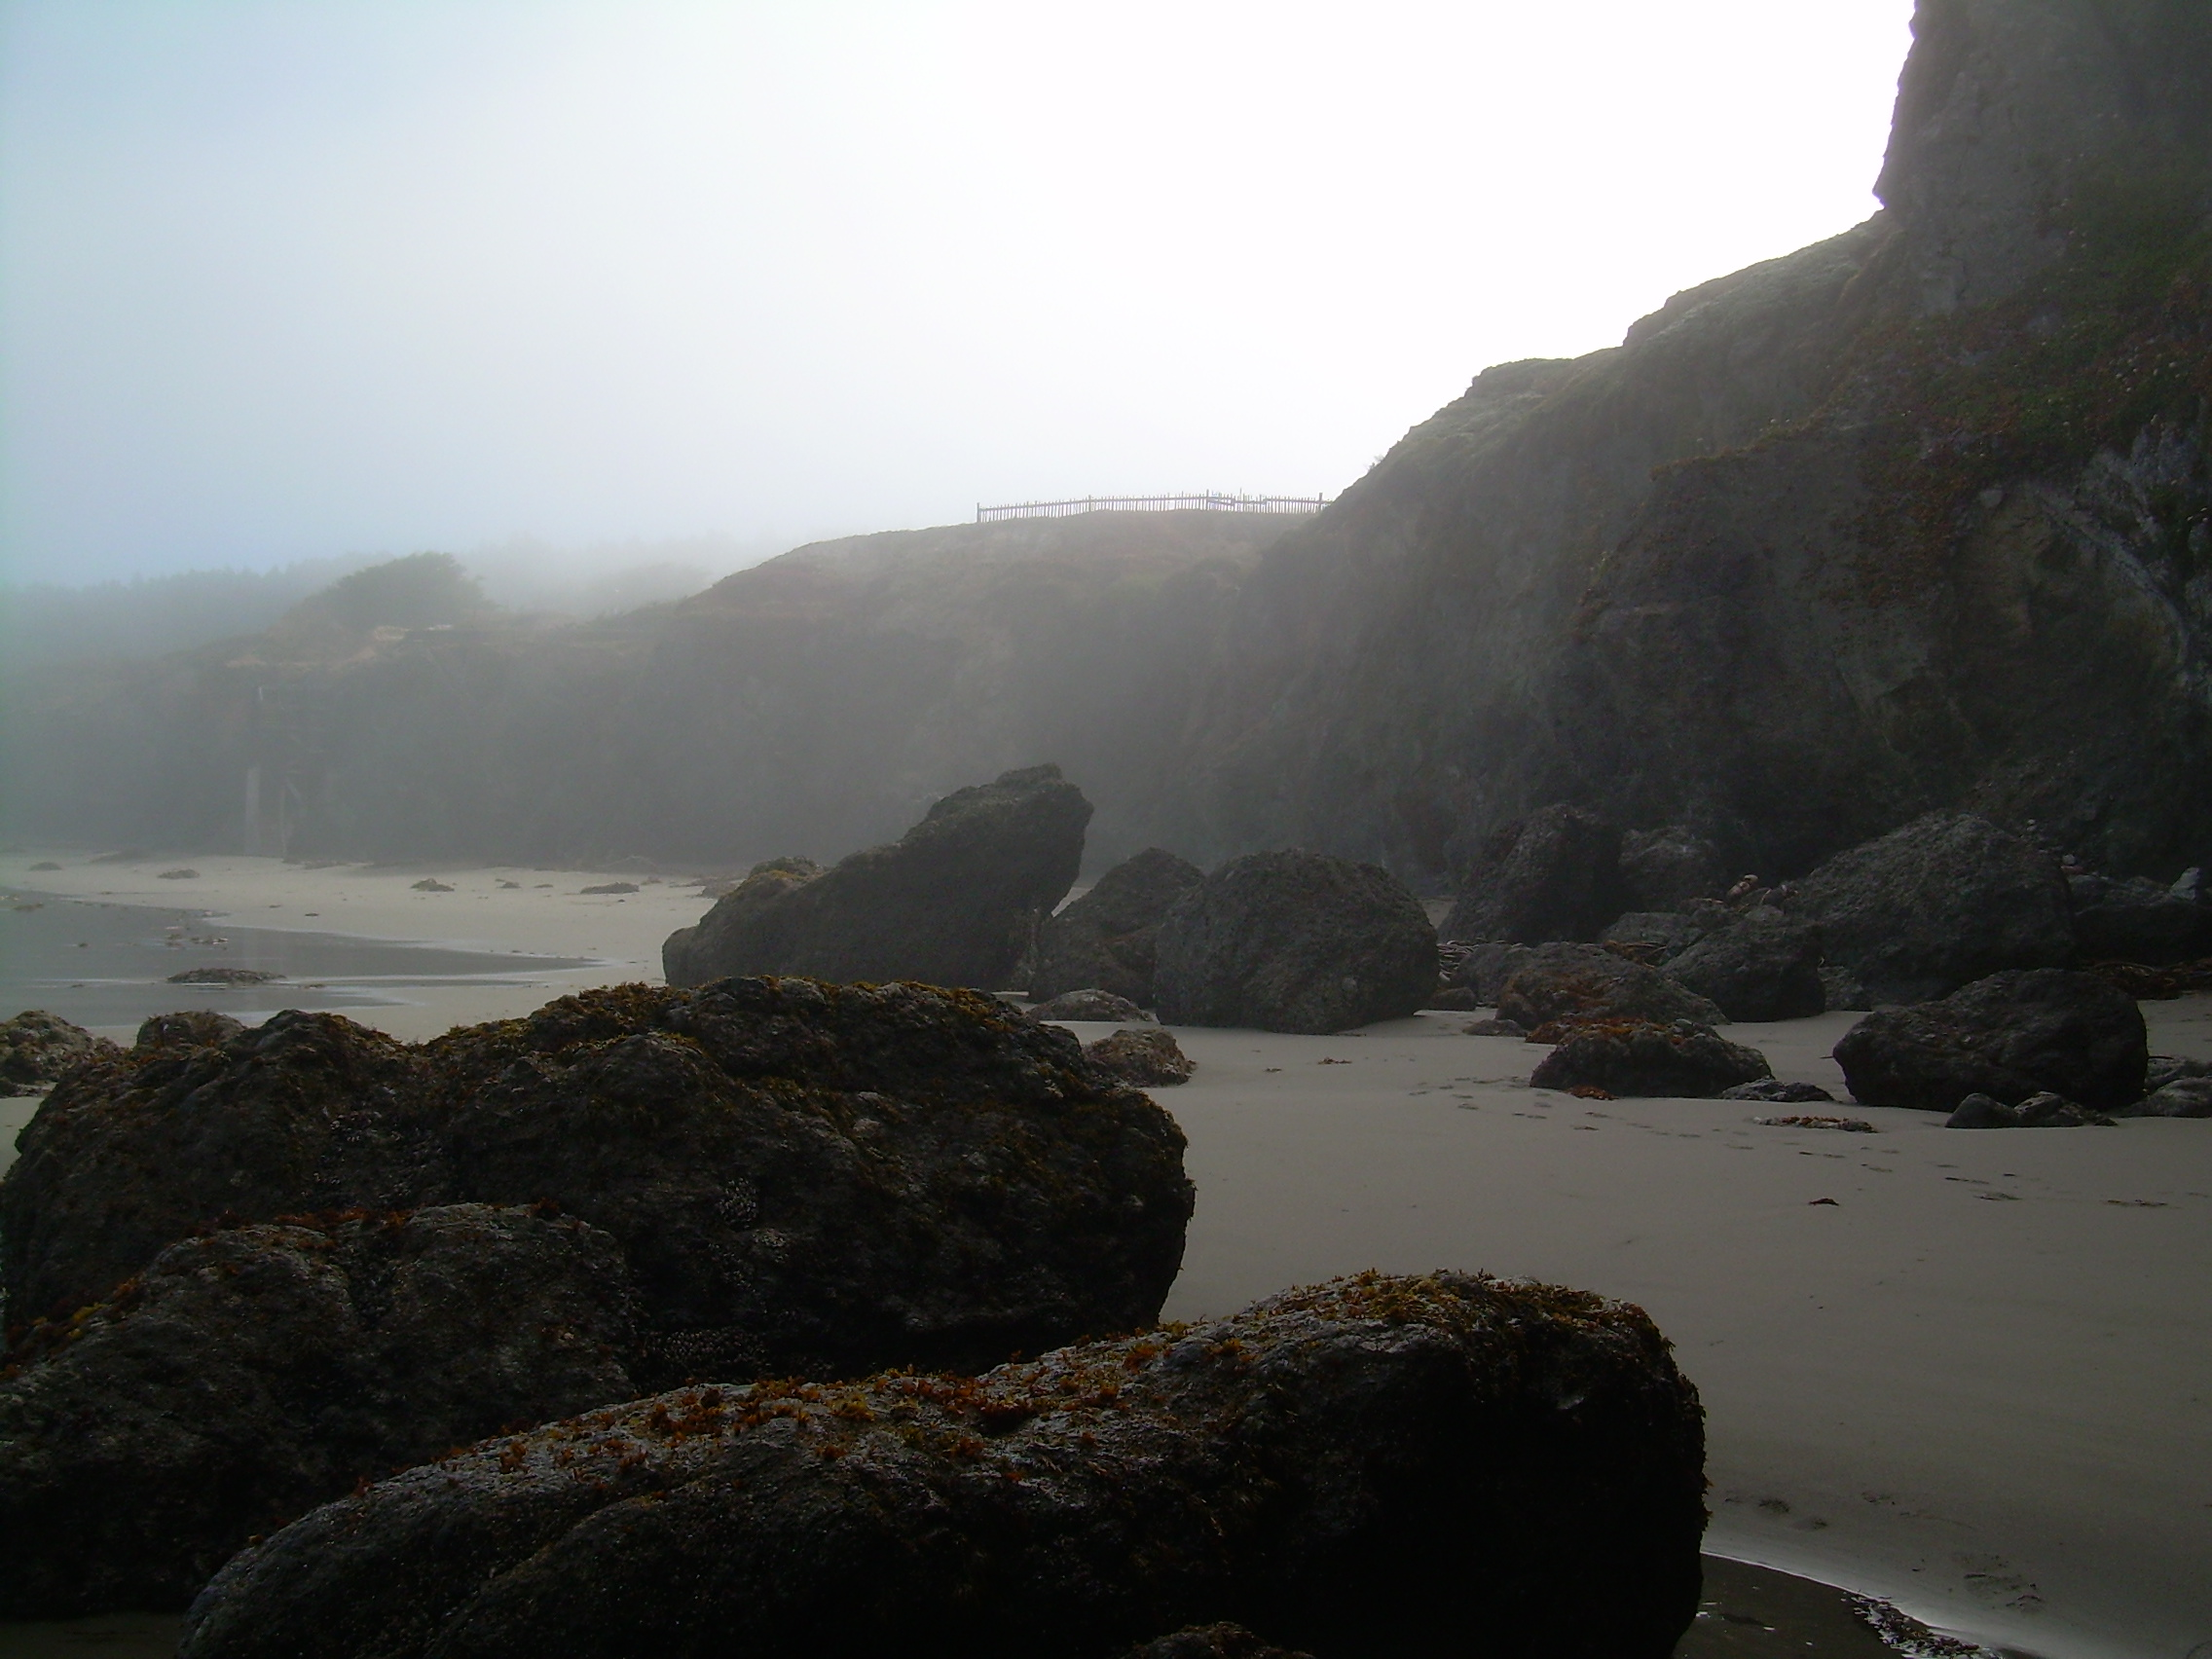 Black Point Beach, Sonoma County, California in the fog